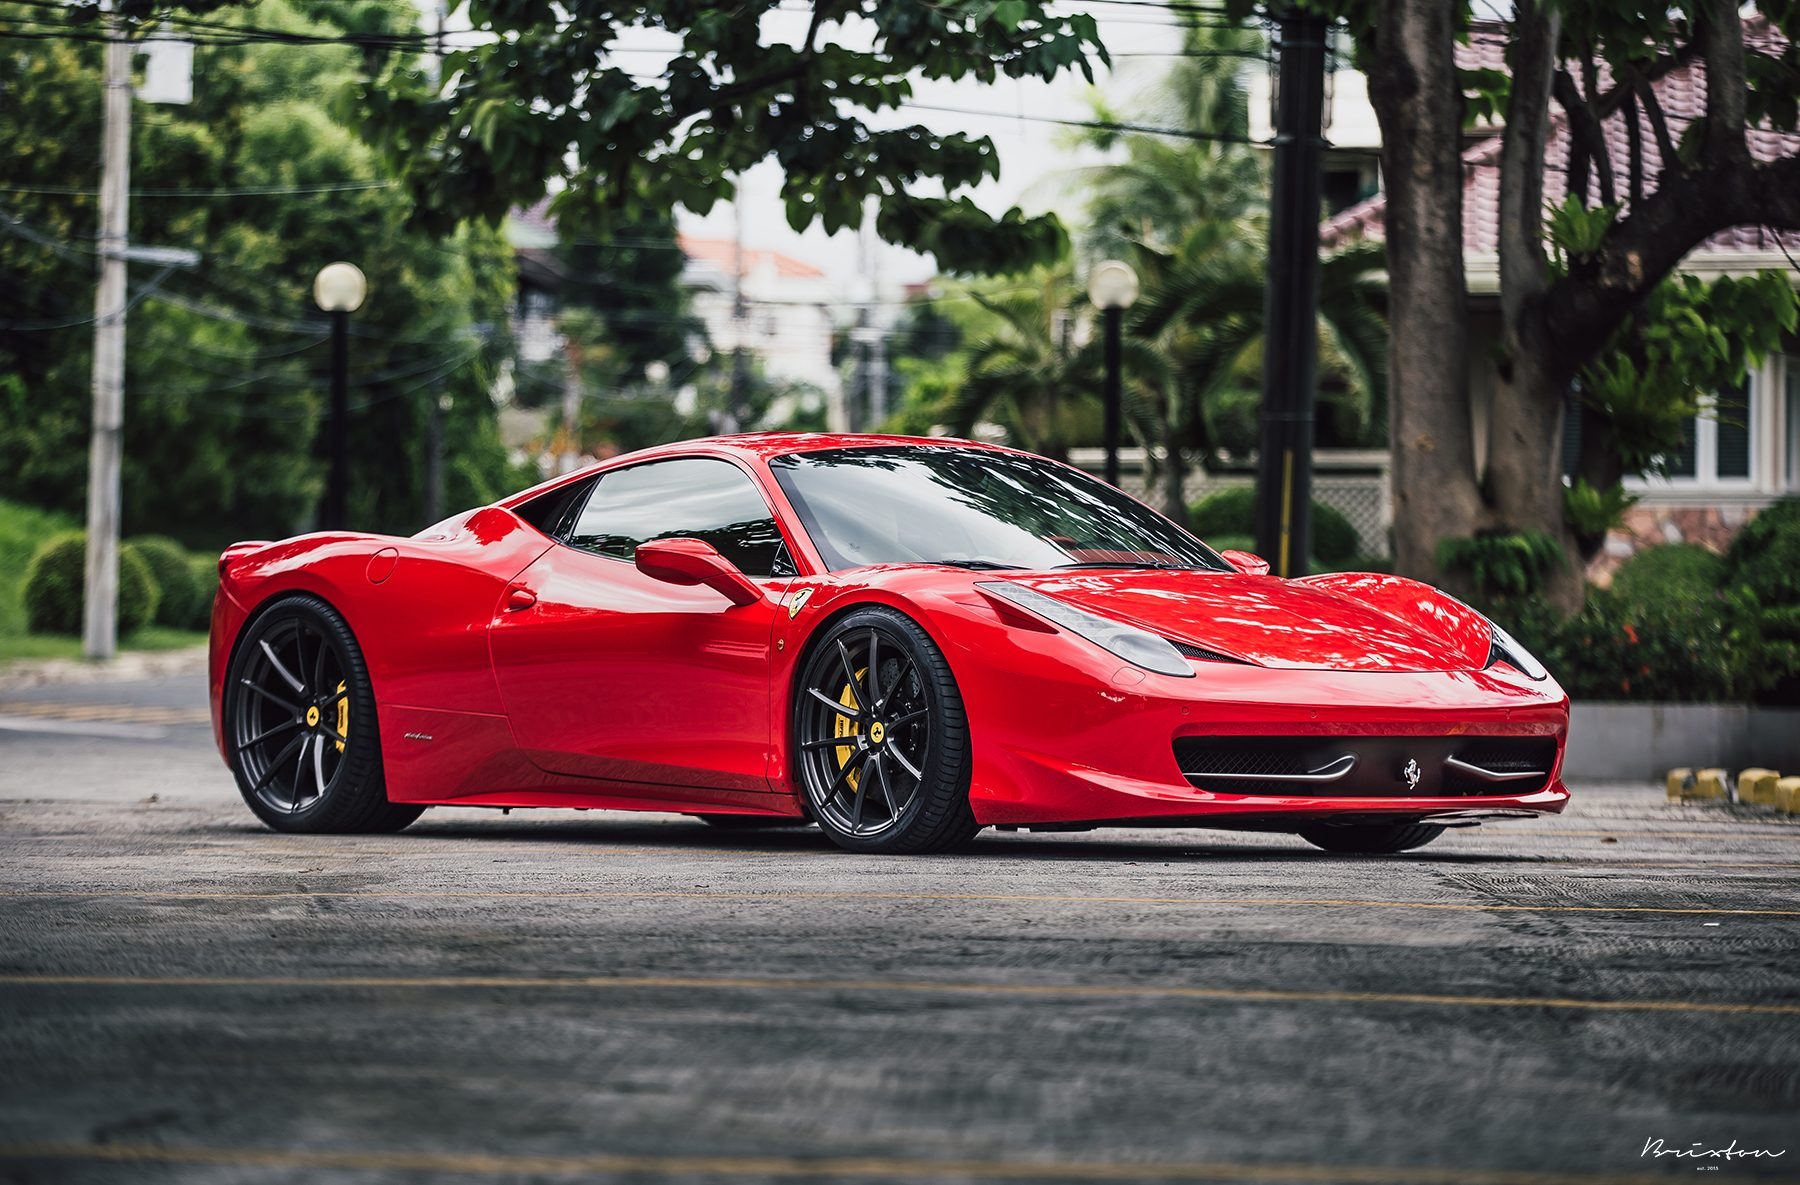 red ferrari 458 brixton forged wheels wr3 ultrasport satin black